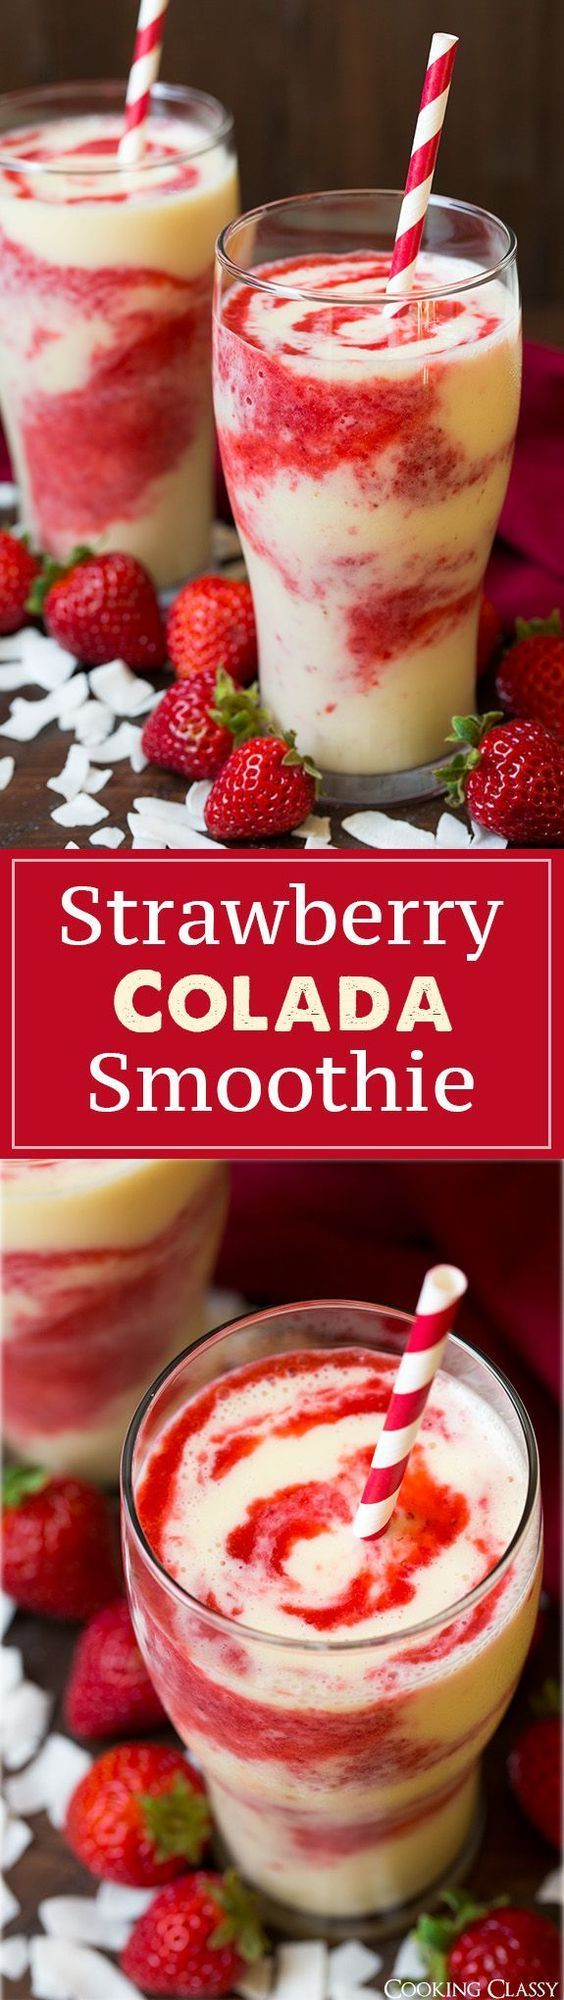 Strawberry Colada Sm Strawberry Colada Smoothie - these are so refreshing on a hot summer day! Love the strawberry coconut flavor combo! https://www.pinterest.com/pin/11188699052824598/ Also check out: http://kombuchaguru.com